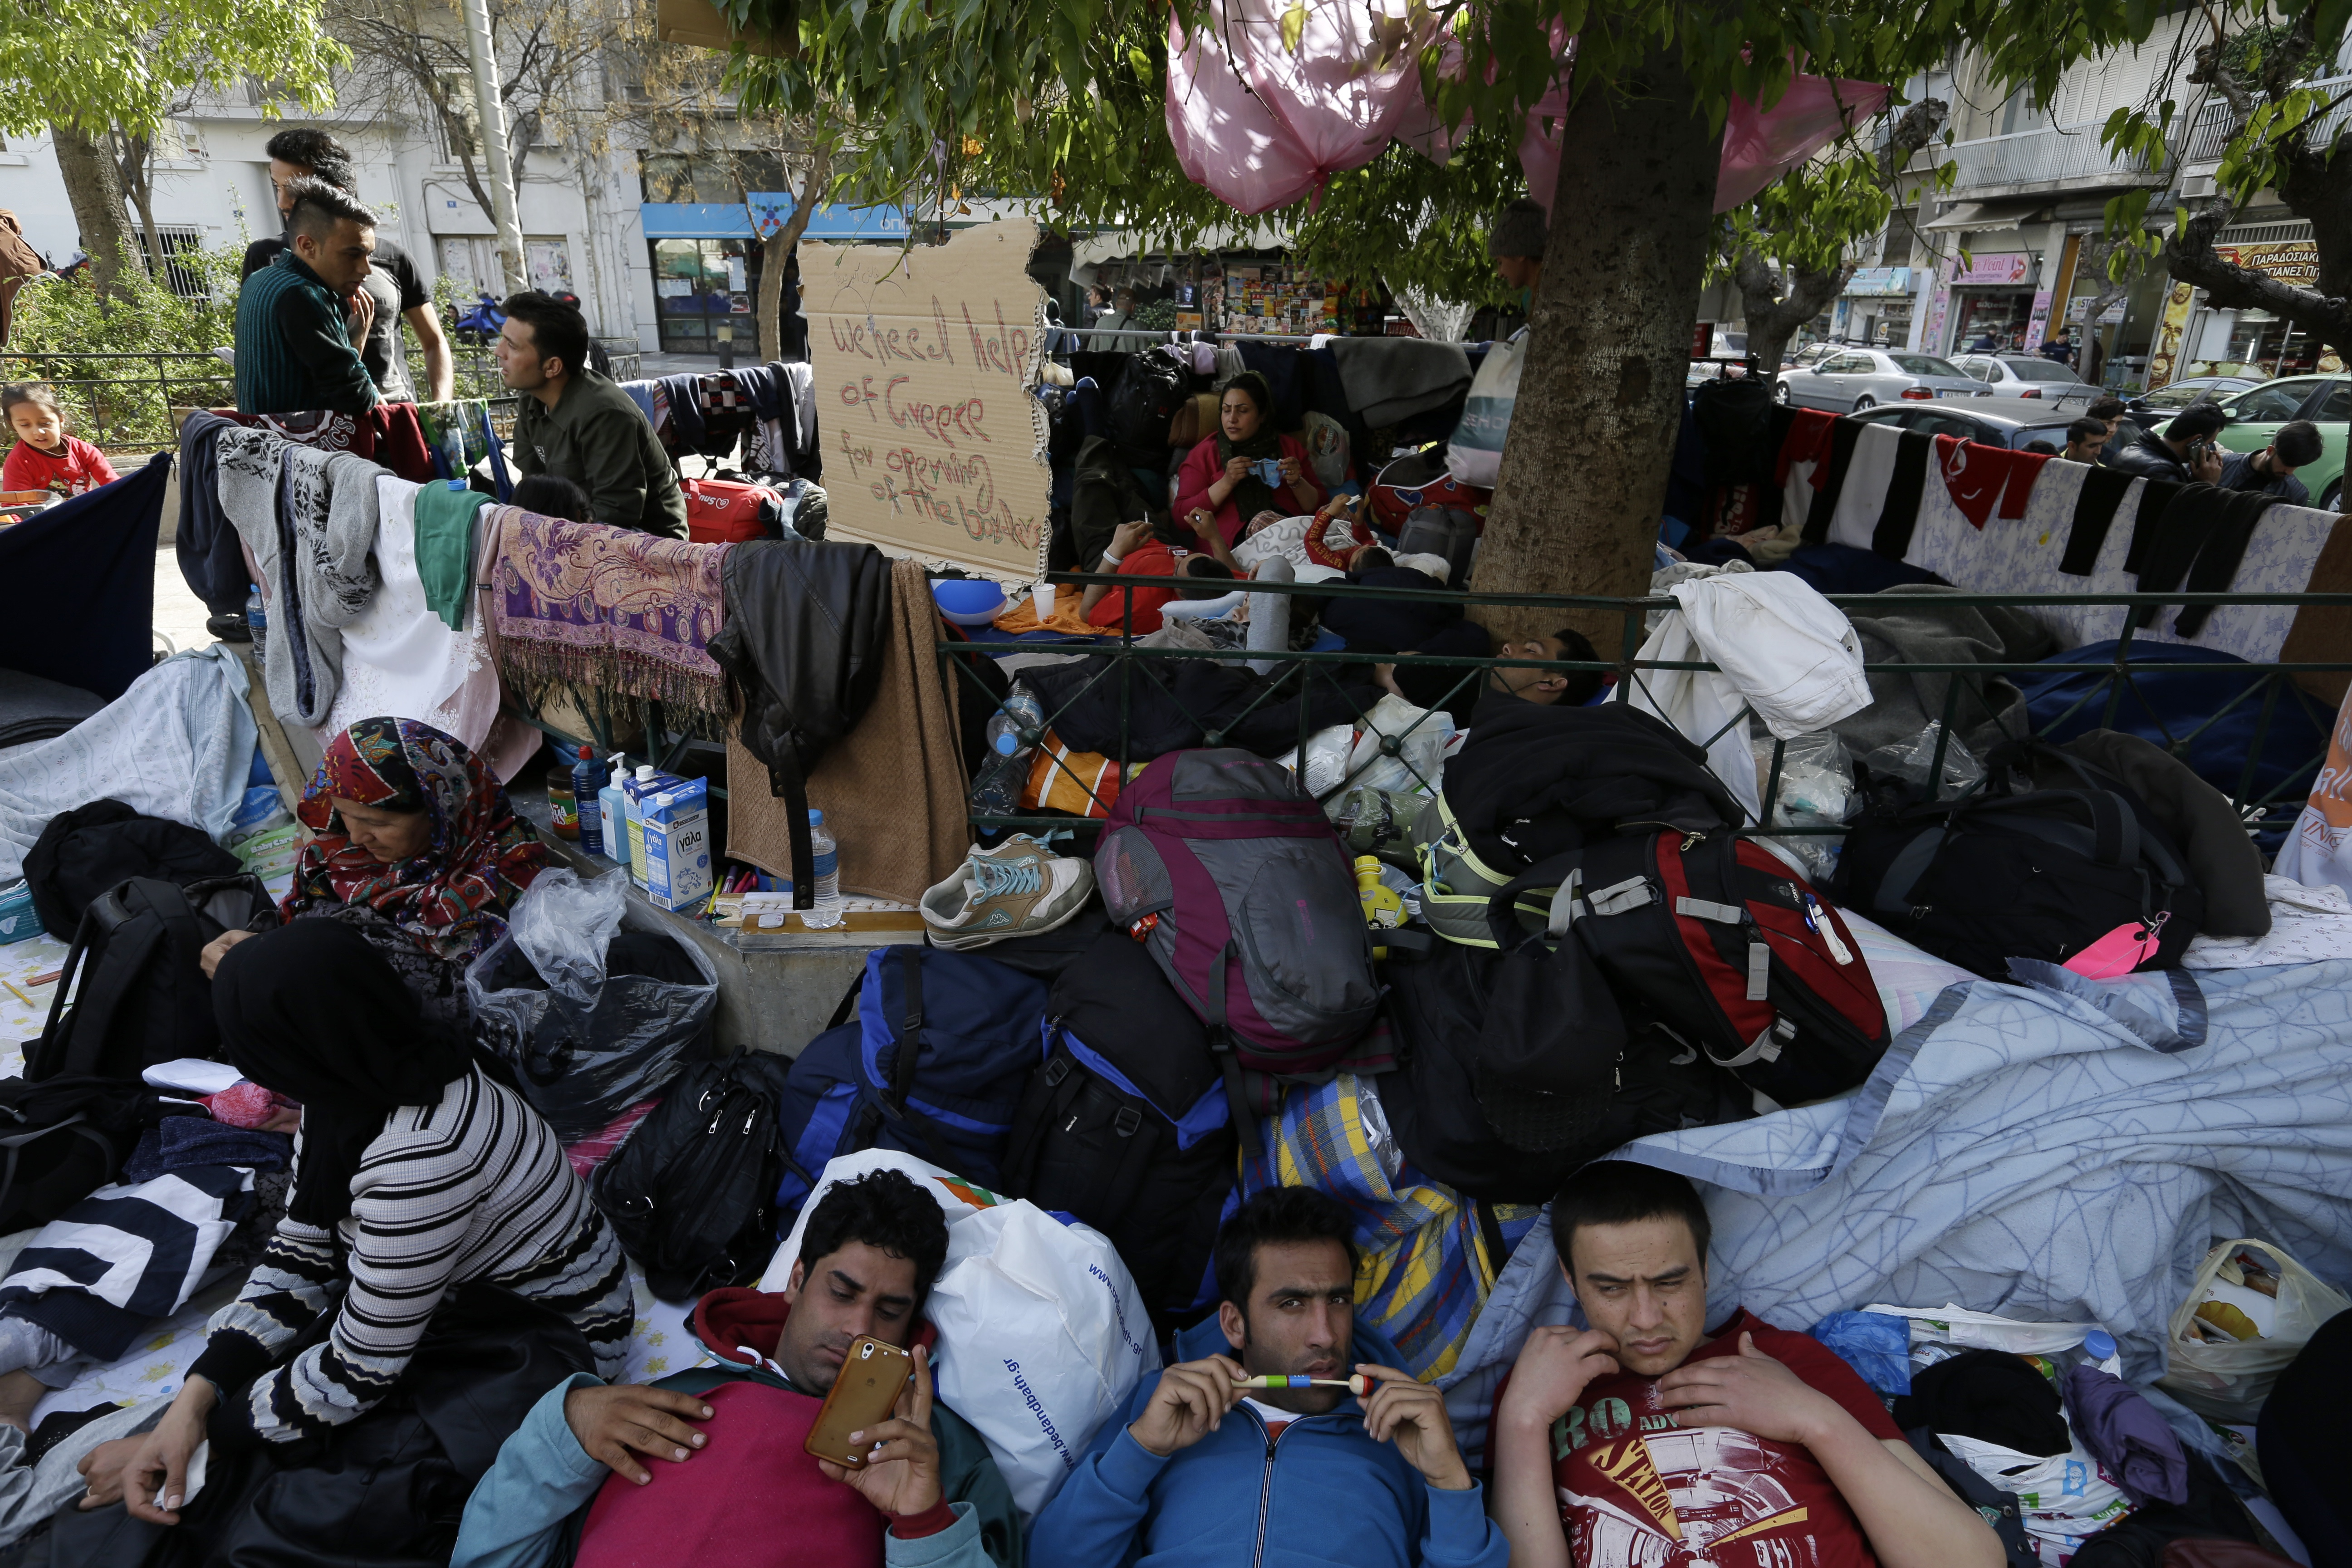 Migrants rest under a tree at the Victoria Square in Athens, Greece, March 1, 2016.